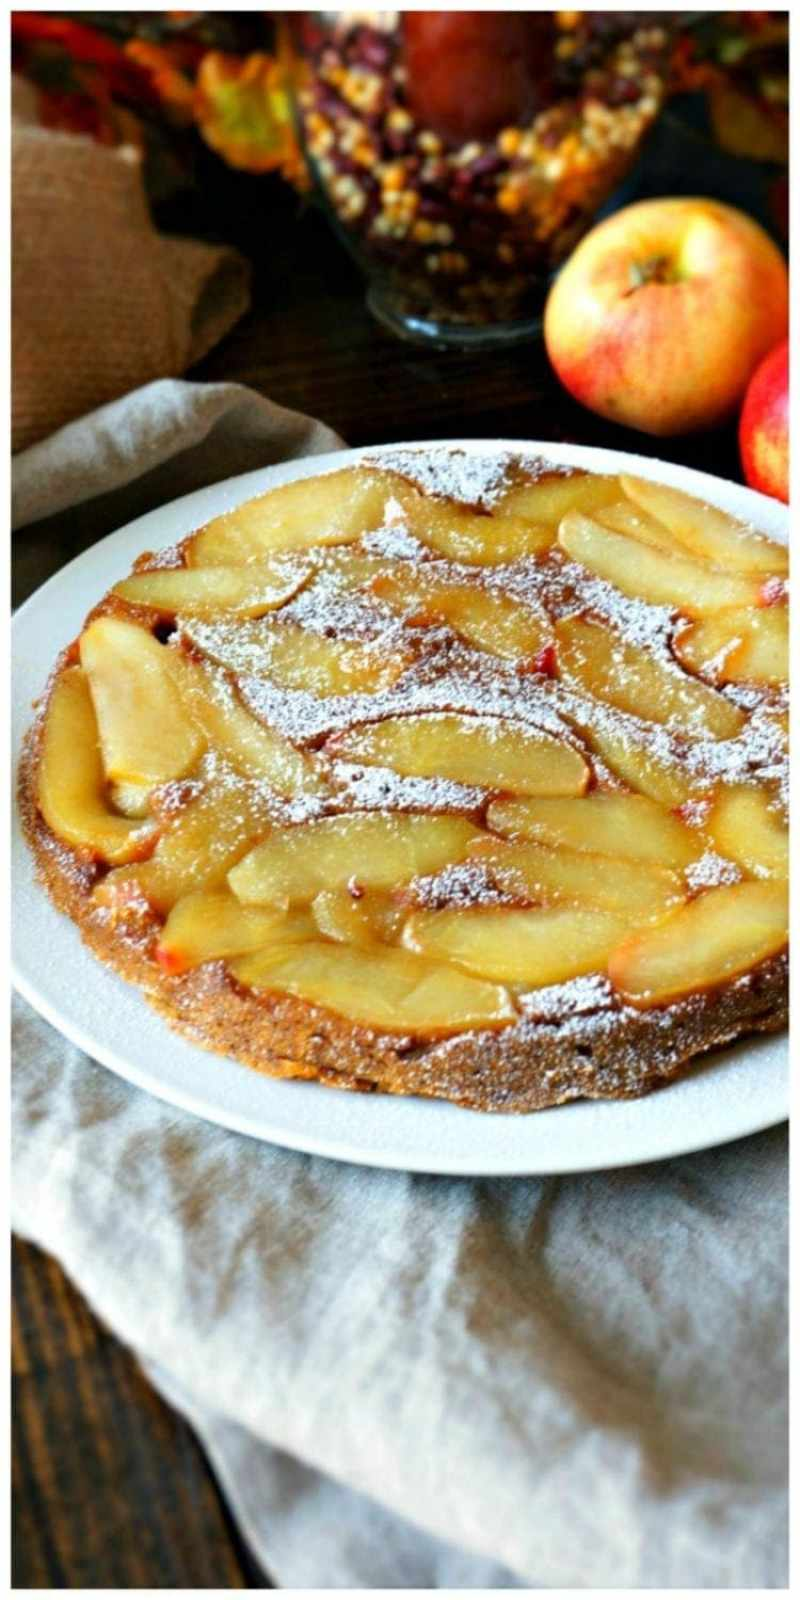 Pumpkin Apple Upside Down Cake: A moist maple pumpkin cake is the base for displaying caramelized apples--creating an incredible marriage of two classic fall flavors.